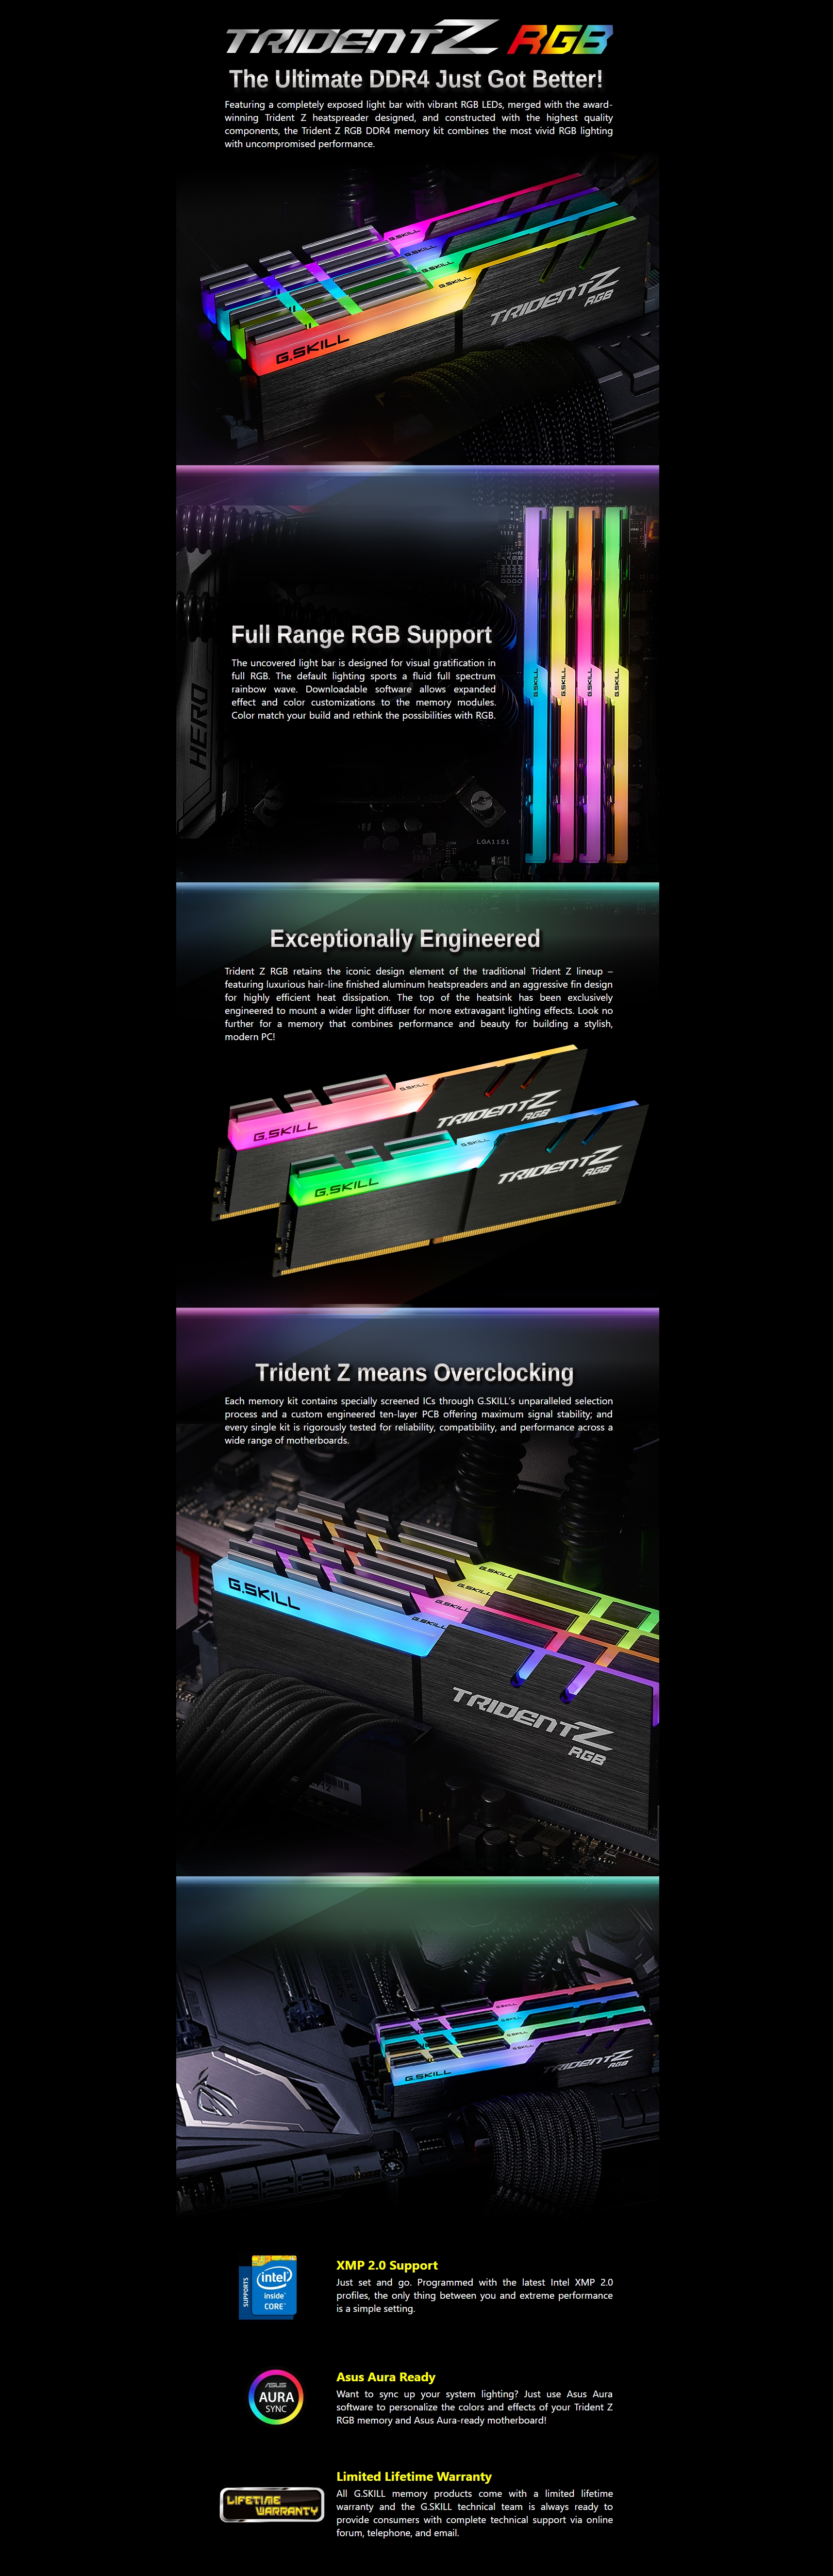 A large marketing image providing additional information about the product G.Skill 128GB Kit (4x32GB) DDR4 Trident Z RGB C16 3200Mhz - Additional alt info not provided